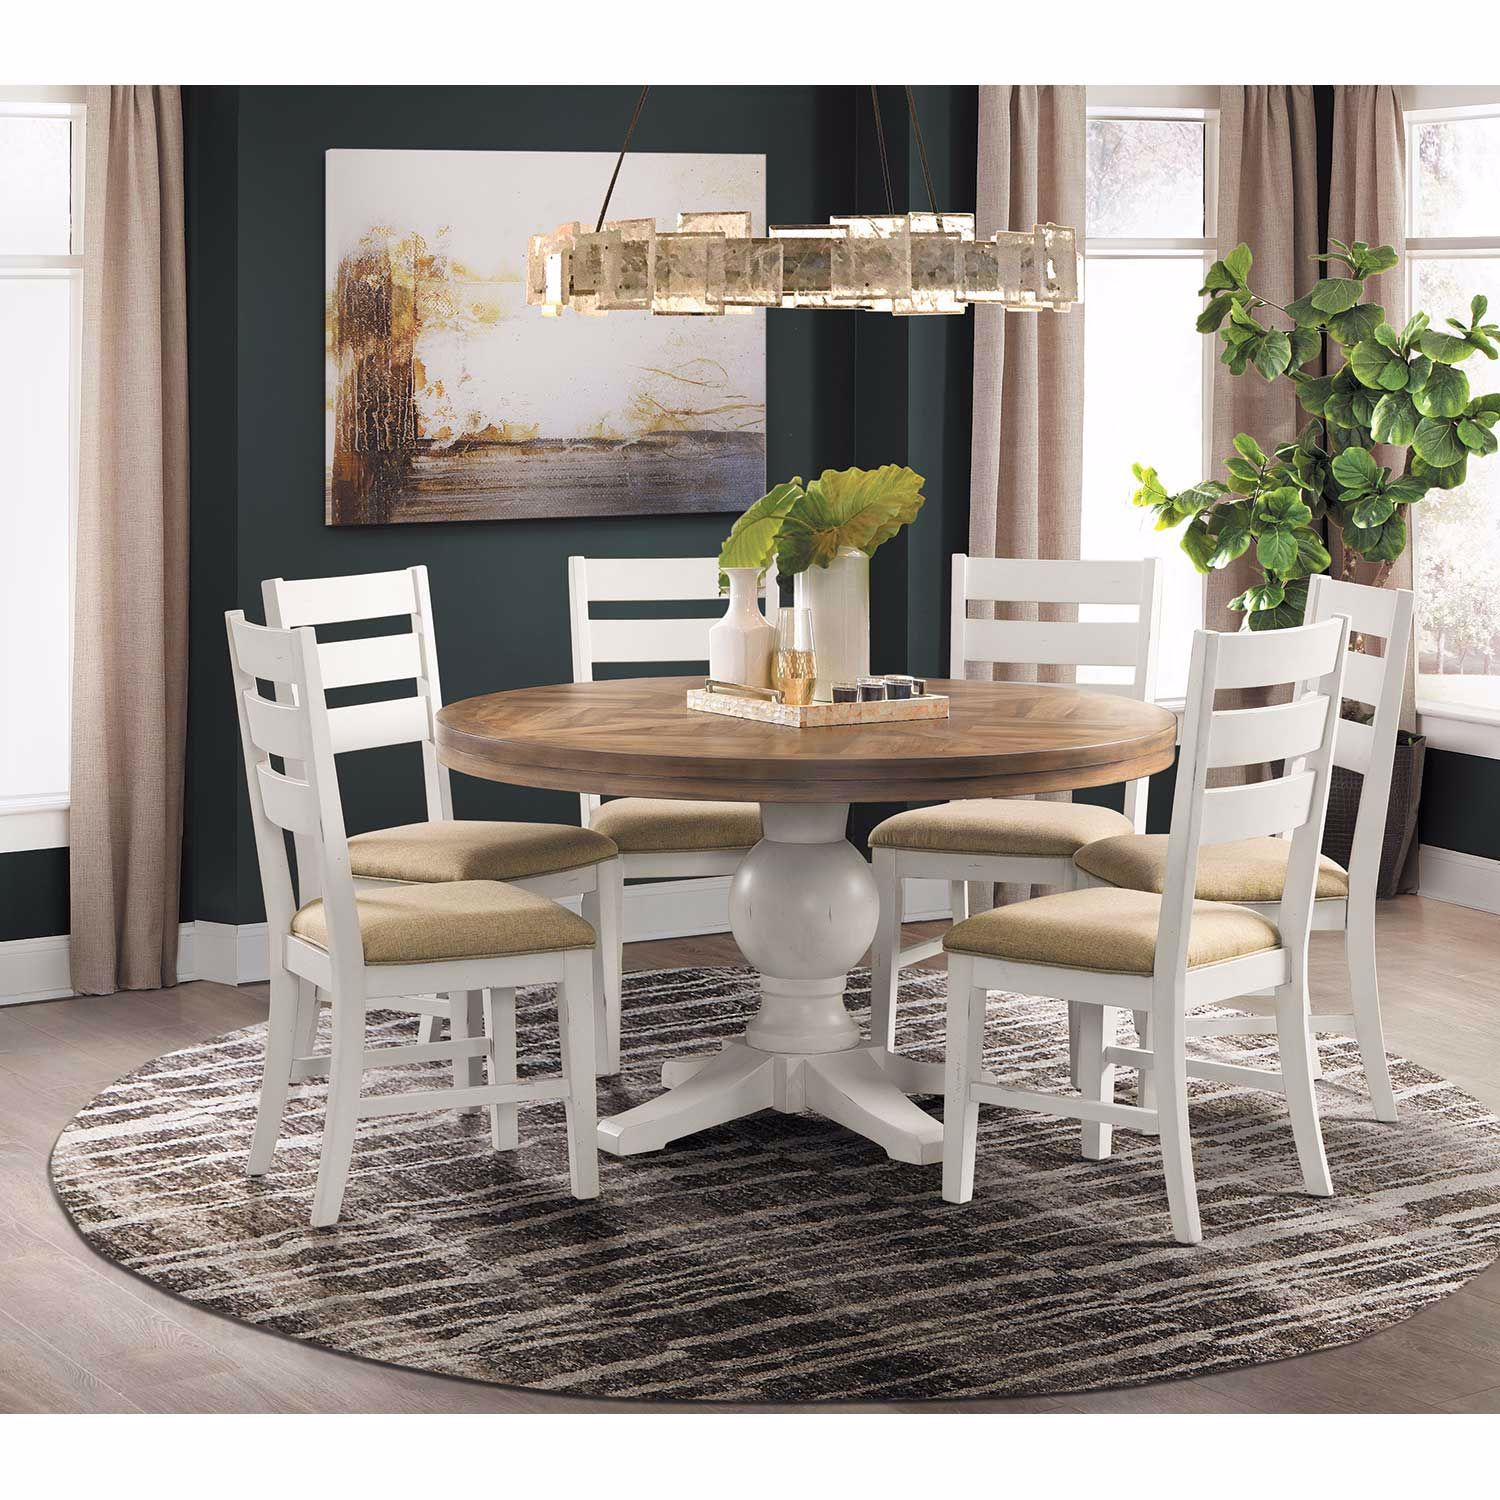 Picture of Park Creek Round Dining Table